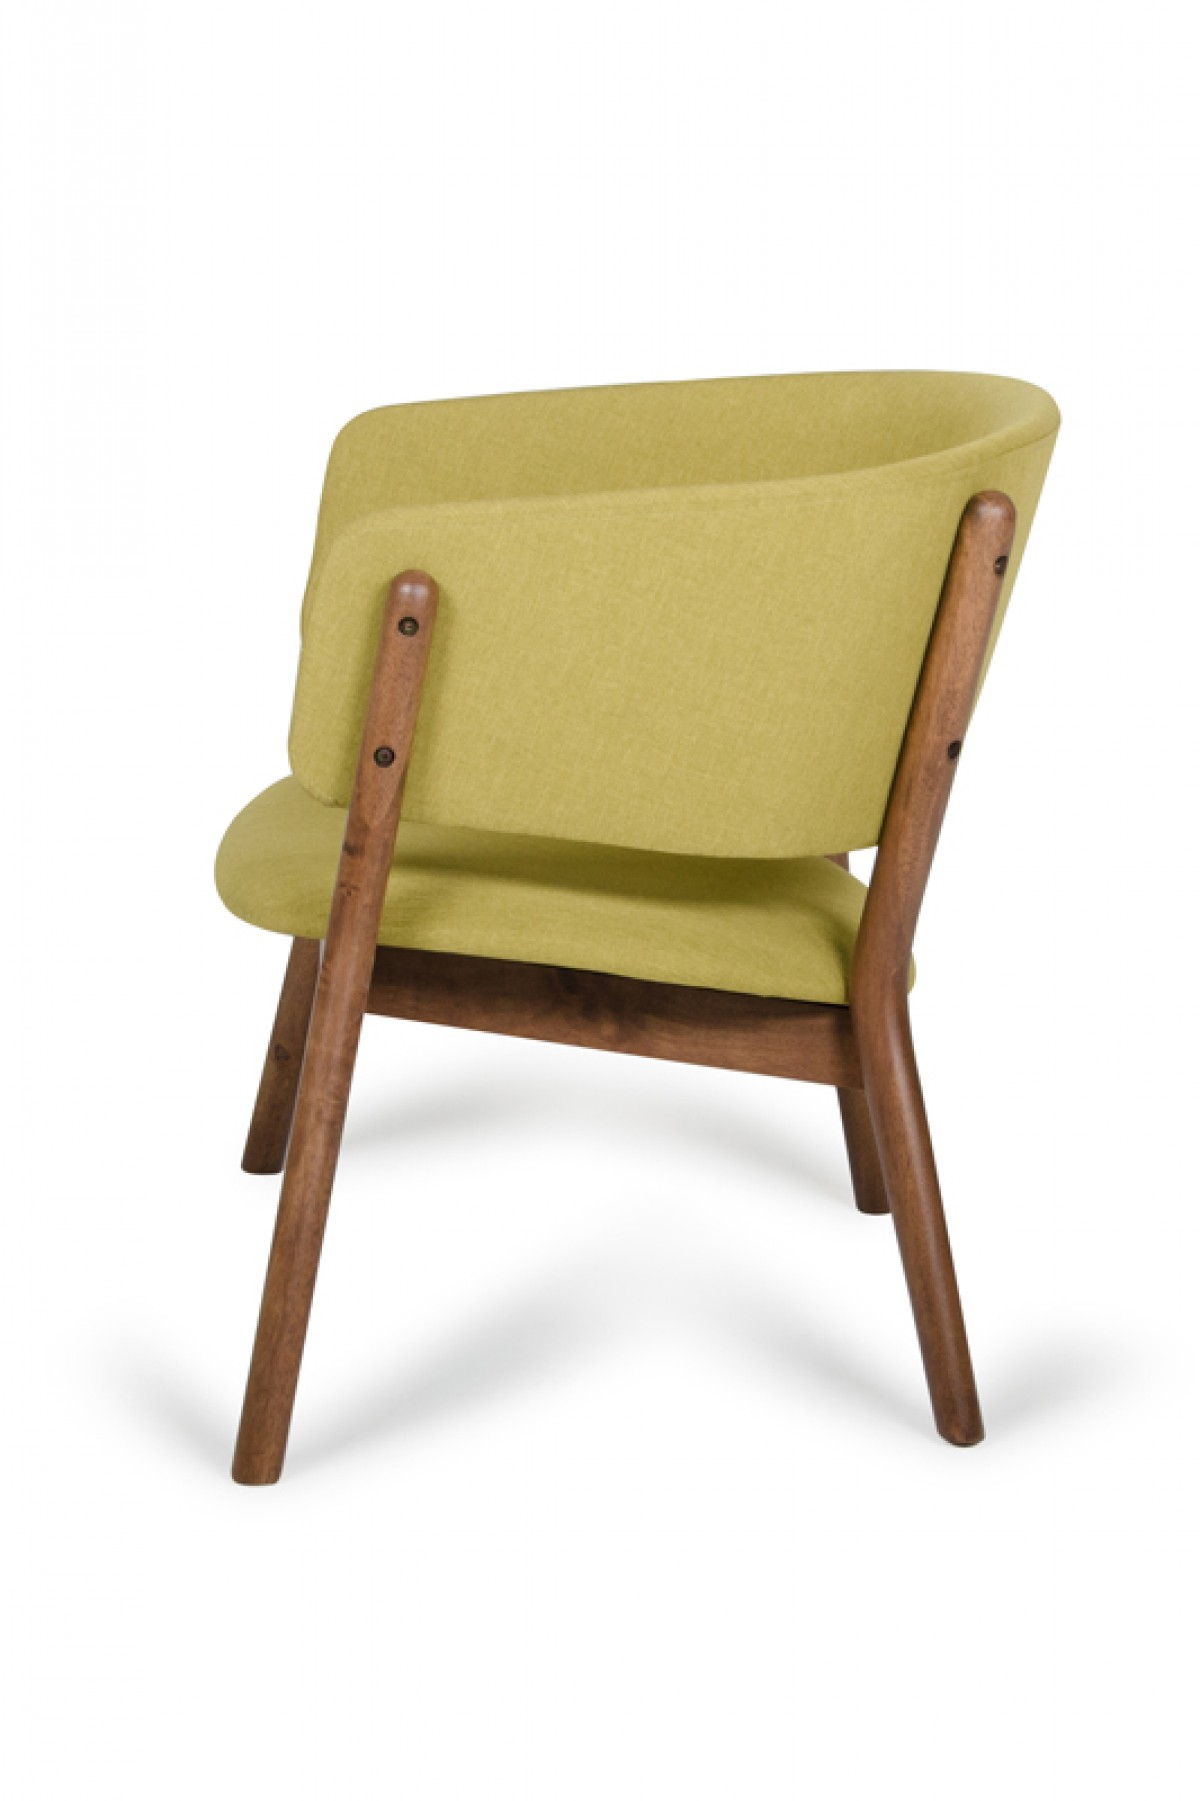 Dante Chair Dante Modern Gold And Walnut Accent Chair Set Of 2